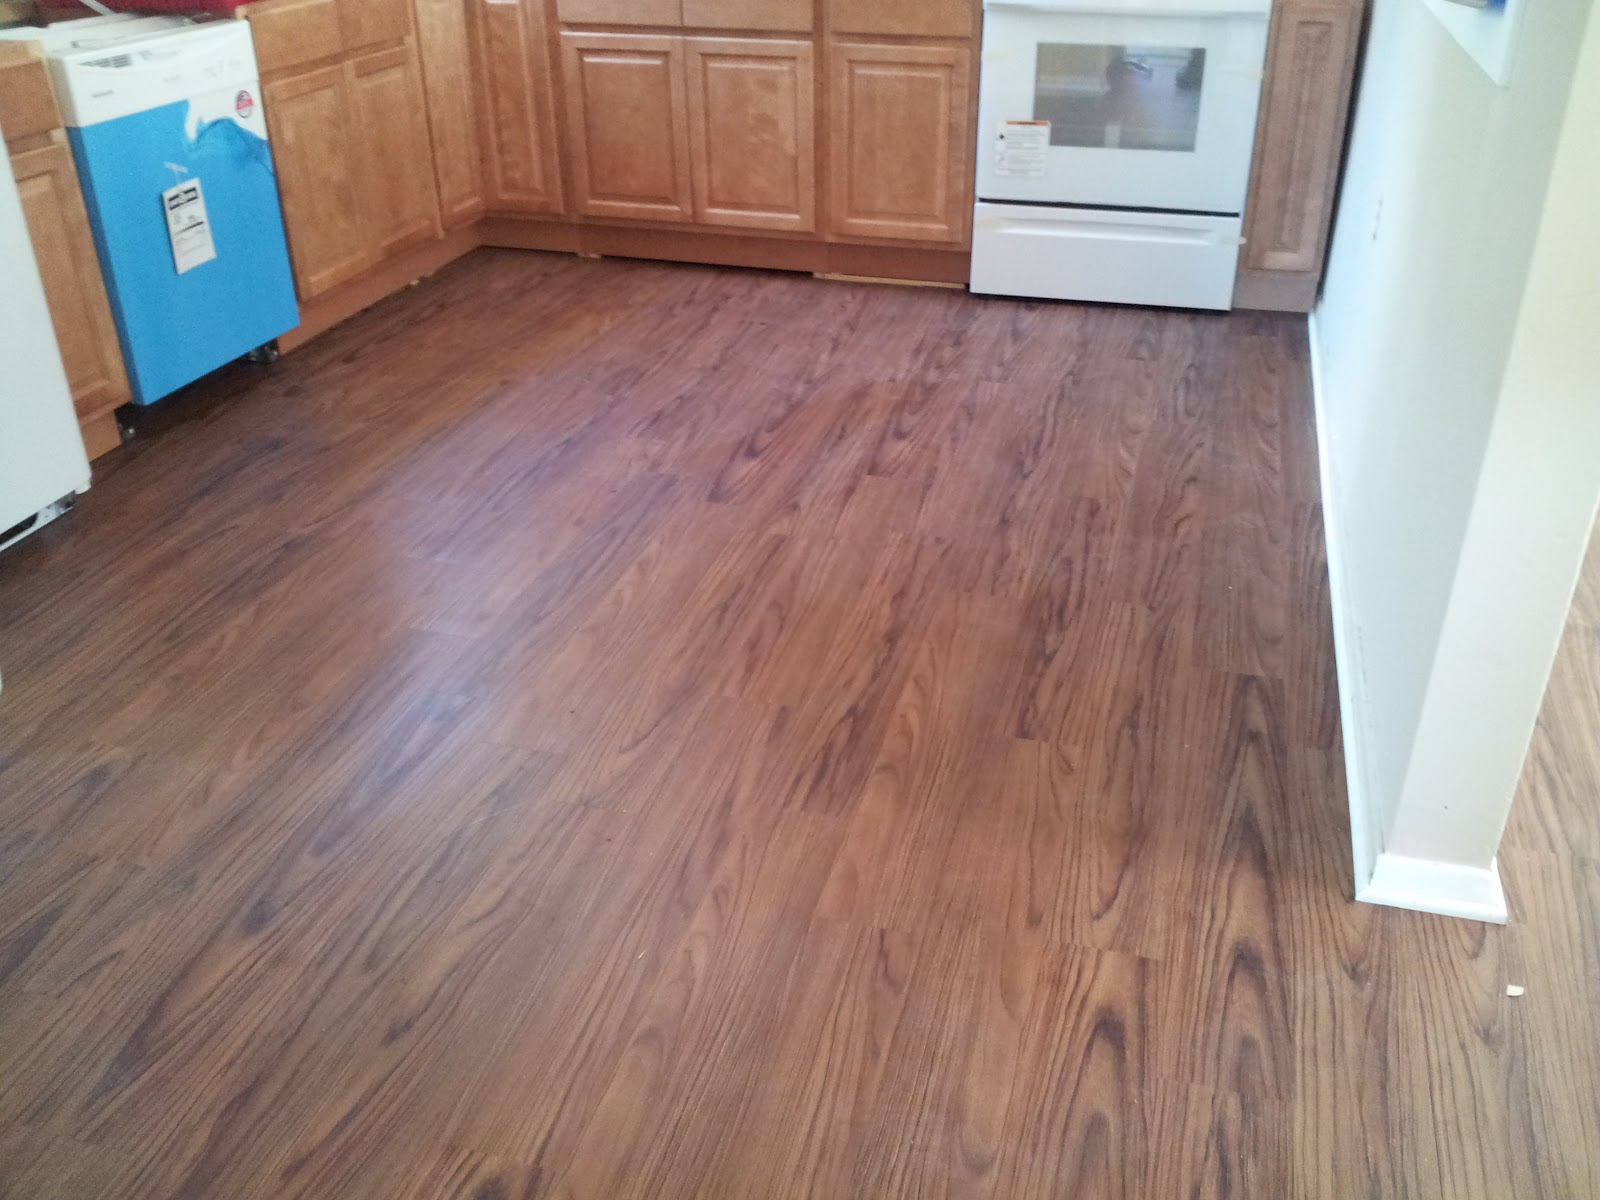 Vinyl flooring that looks like wood ask home design for Floor installation